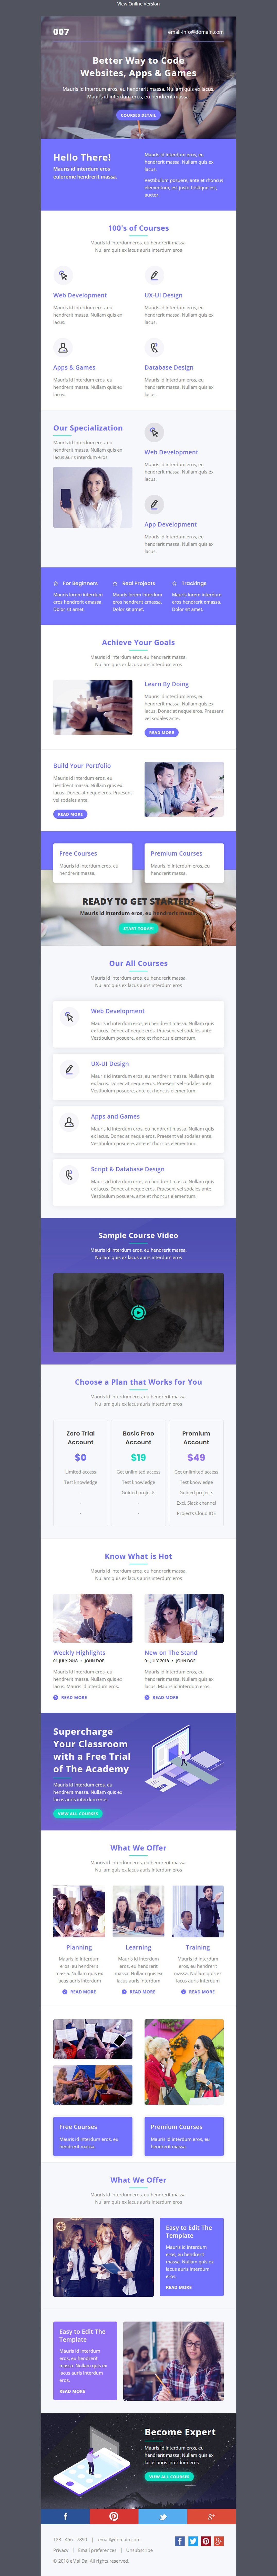 007 – email newsletter templates